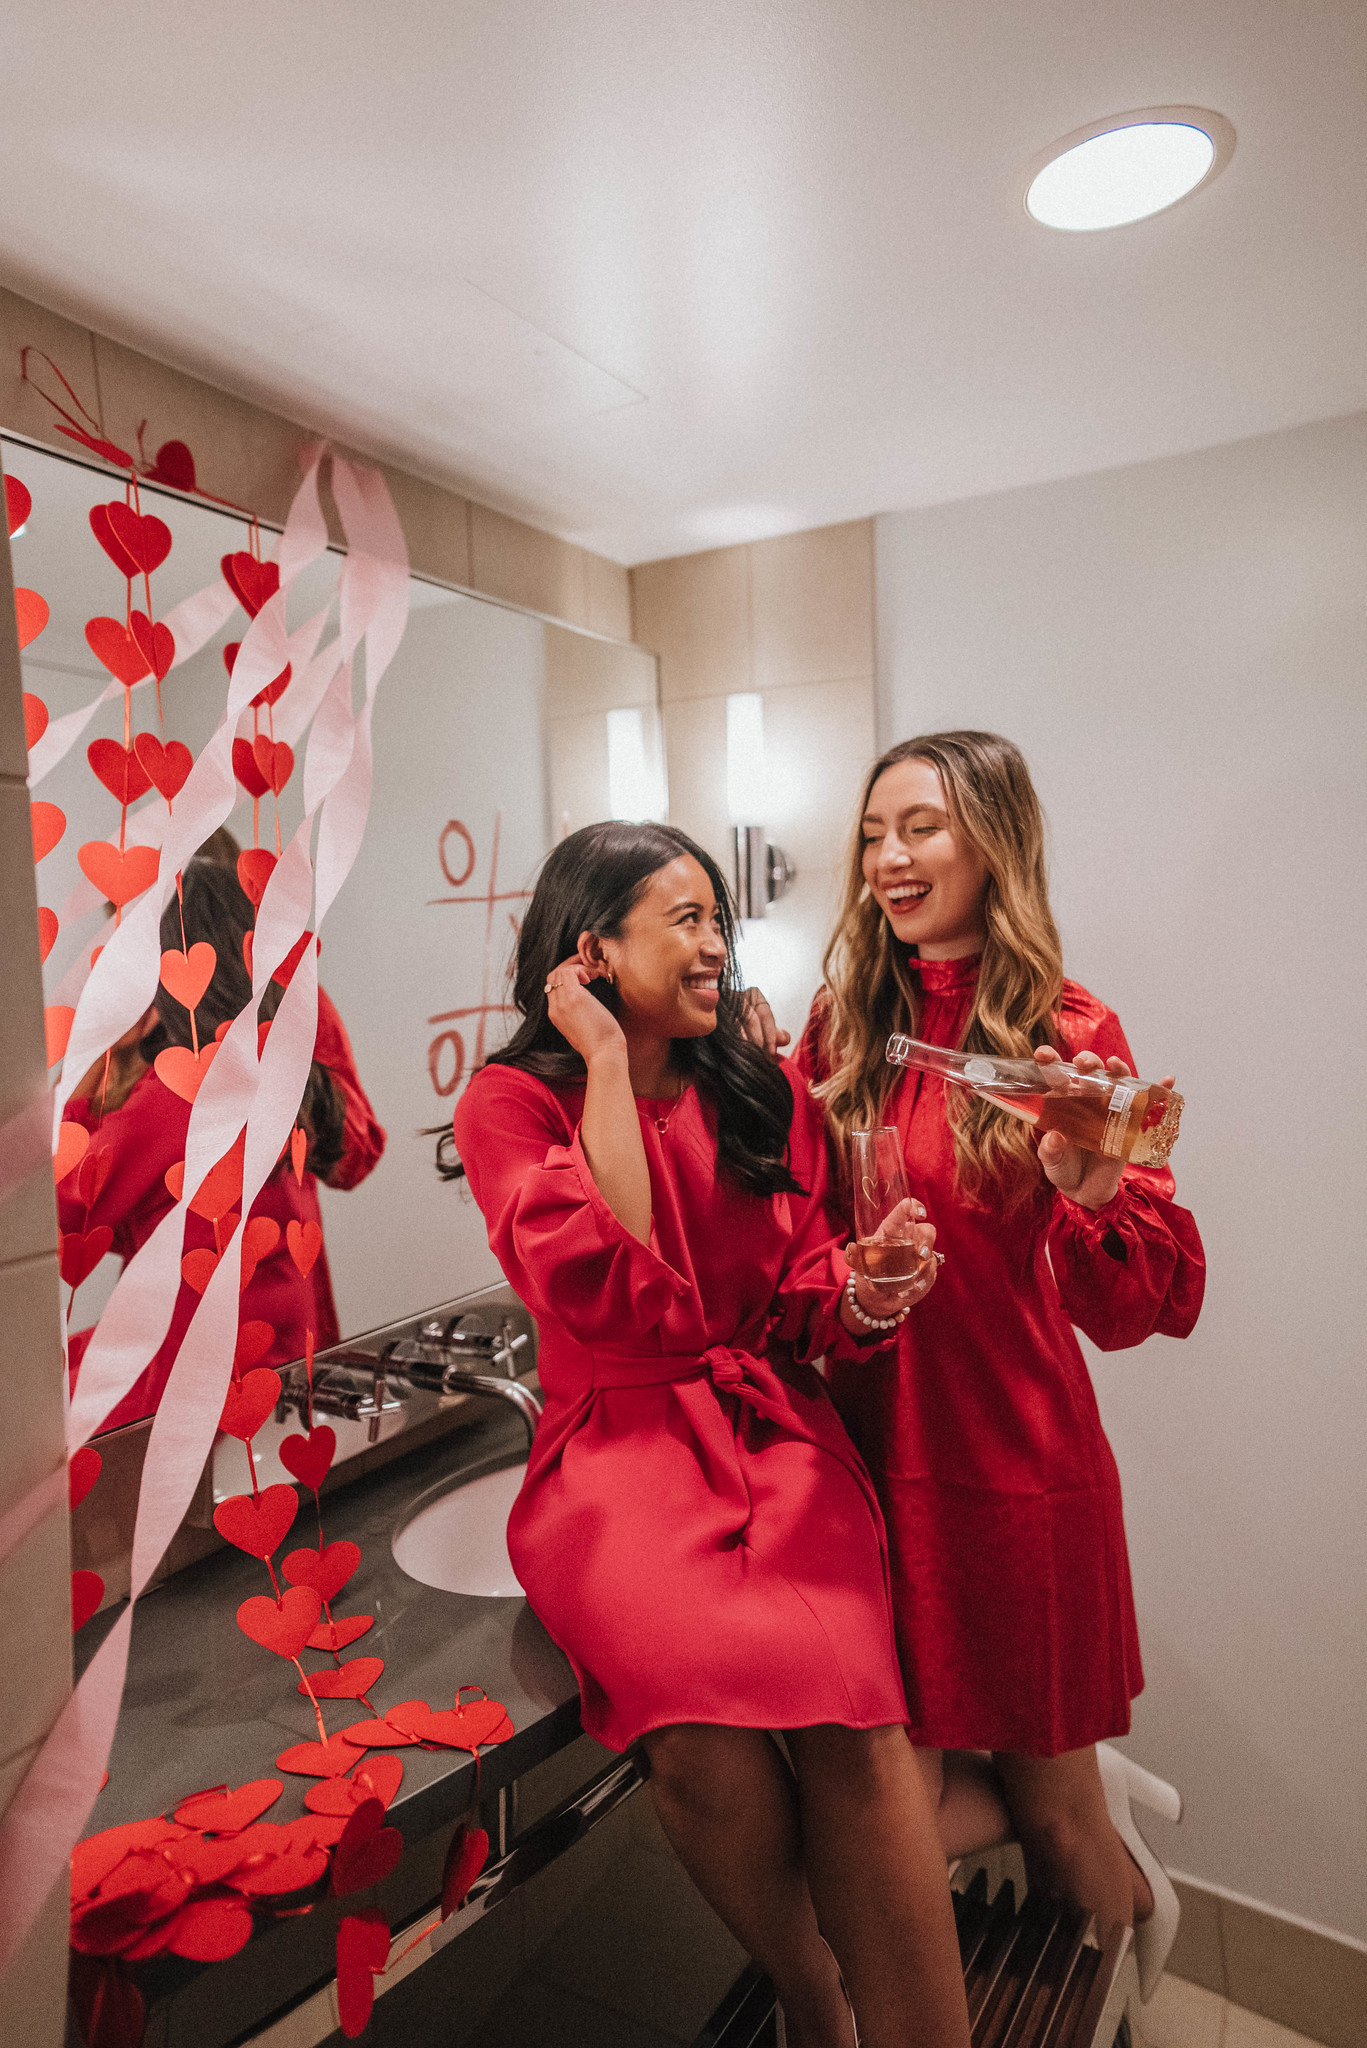 Rose - Valentine's Day posing ideas – Valentine's Day photo shoot ideas – Valentine's Day Inspiration – Galentine's Day Photo Shoot – Valentine's Day photo shoot props – Seattle blogger – Seattle style – Petite blogger – Seattle Washington